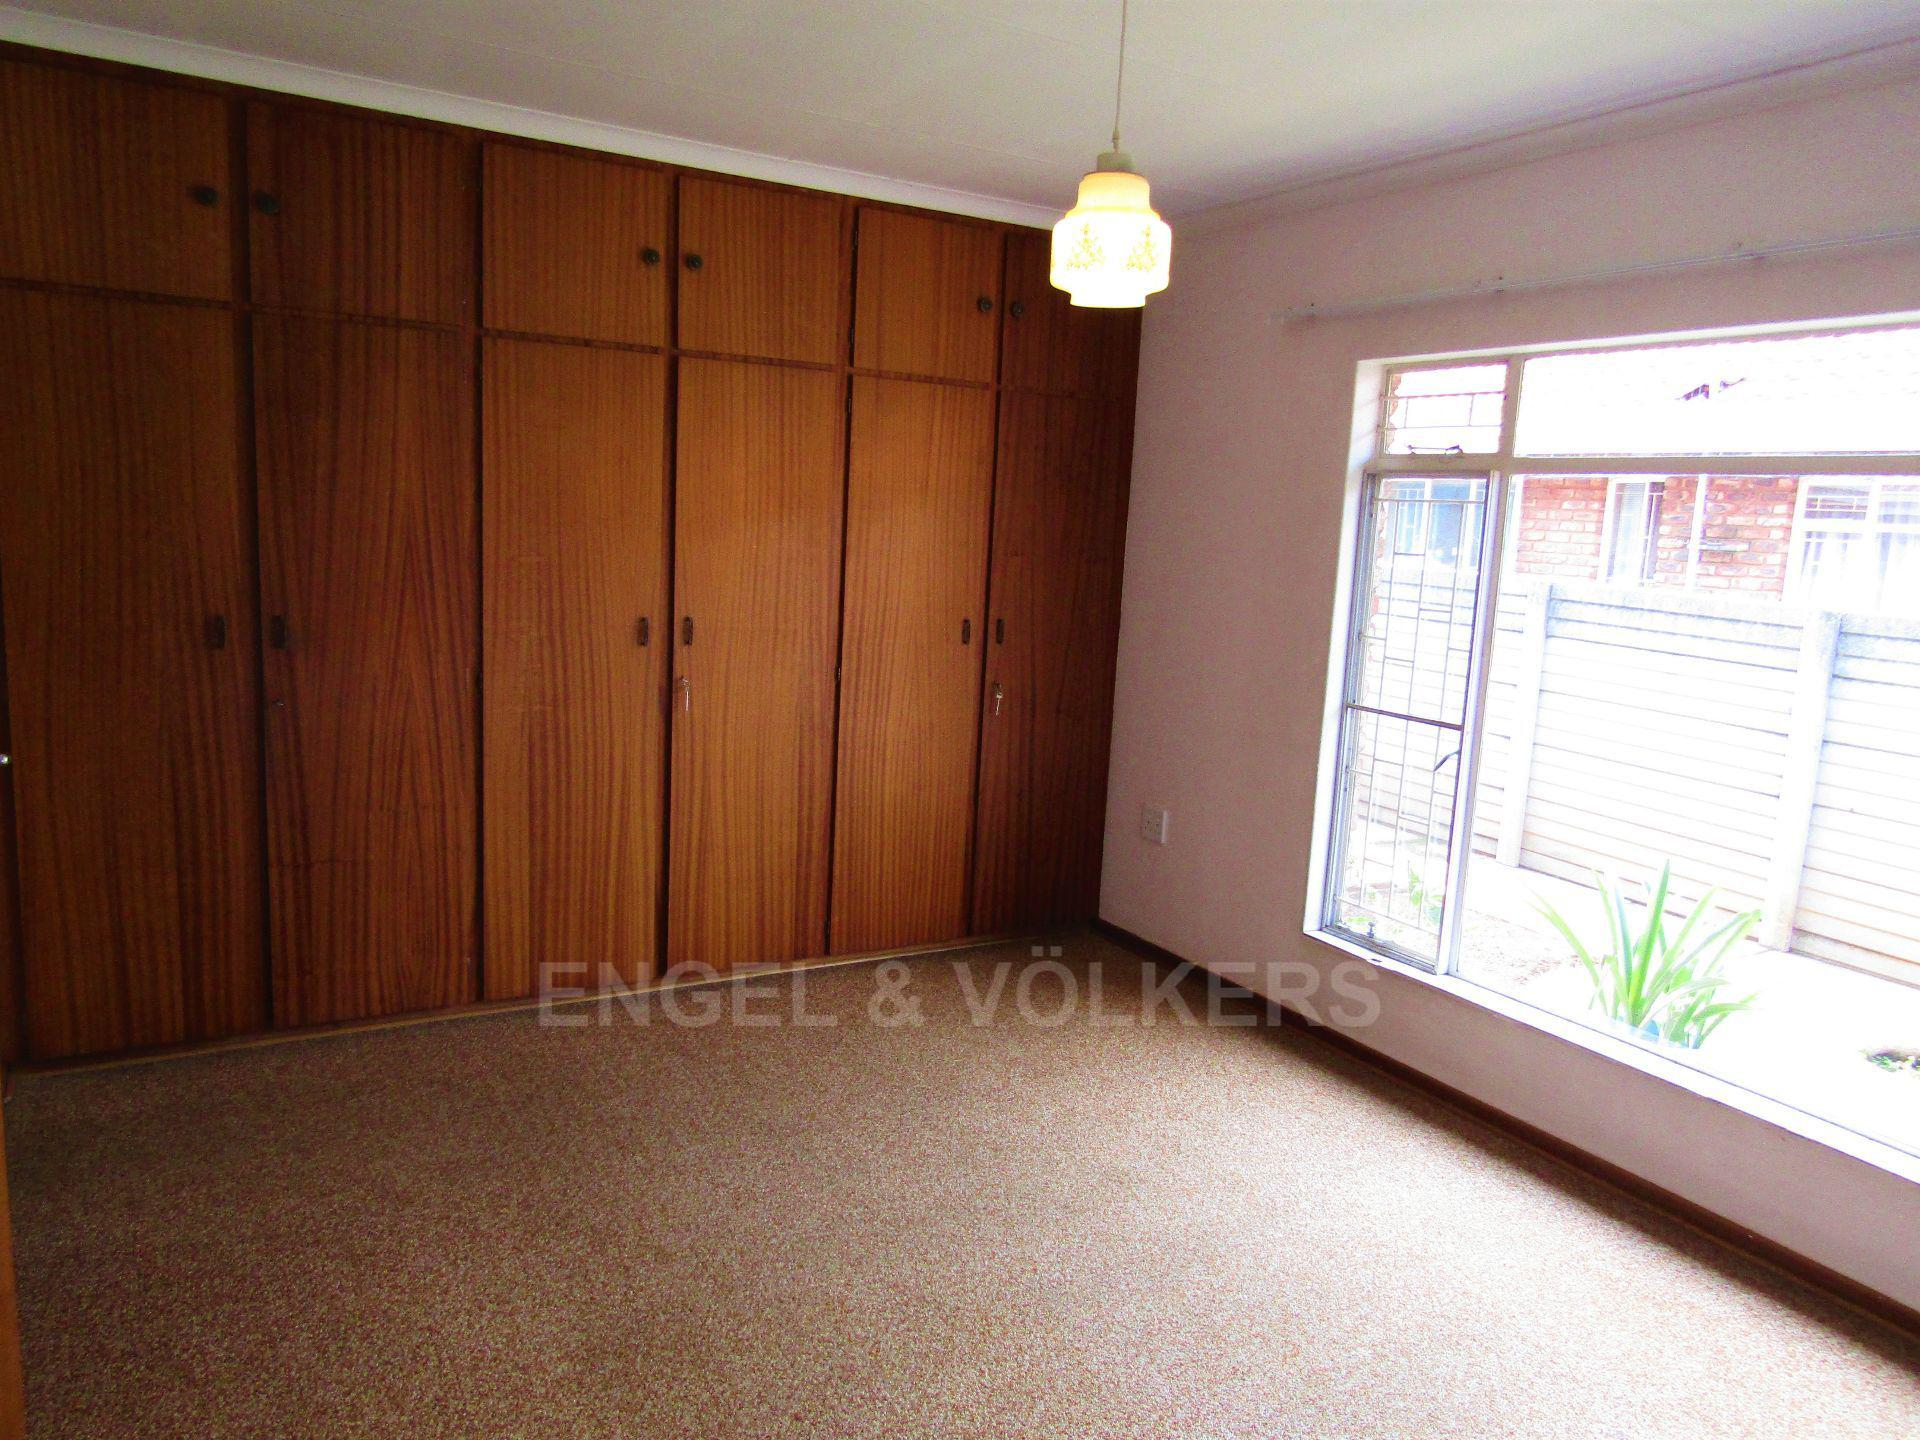 Potchefstroom Central property for sale. Ref No: 13459099. Picture no 15